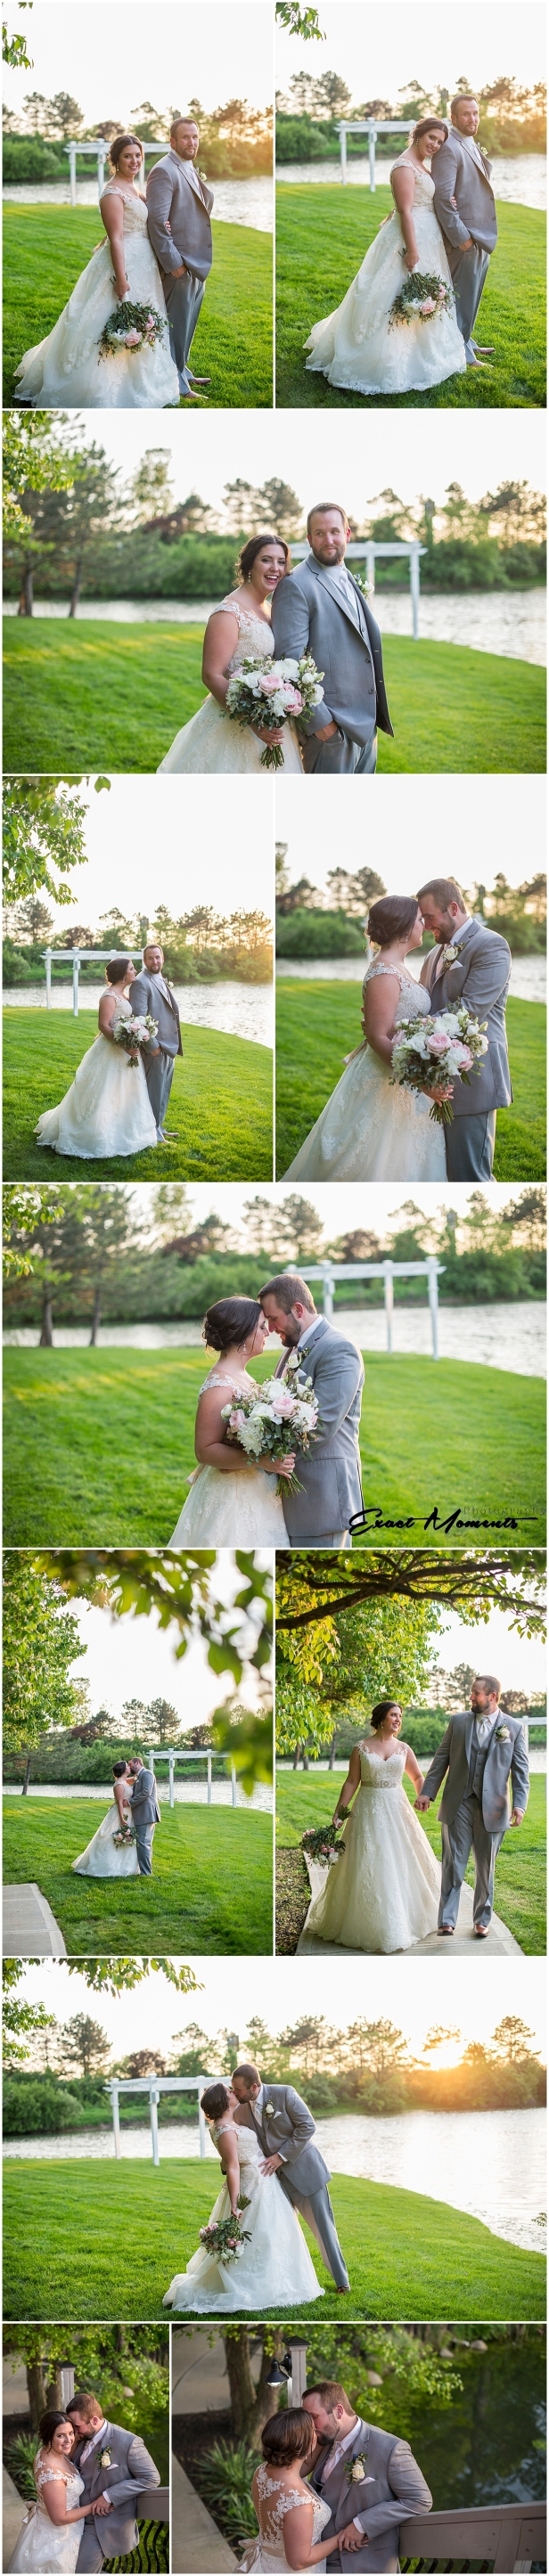 Watersedge Wedding Hilliard OH